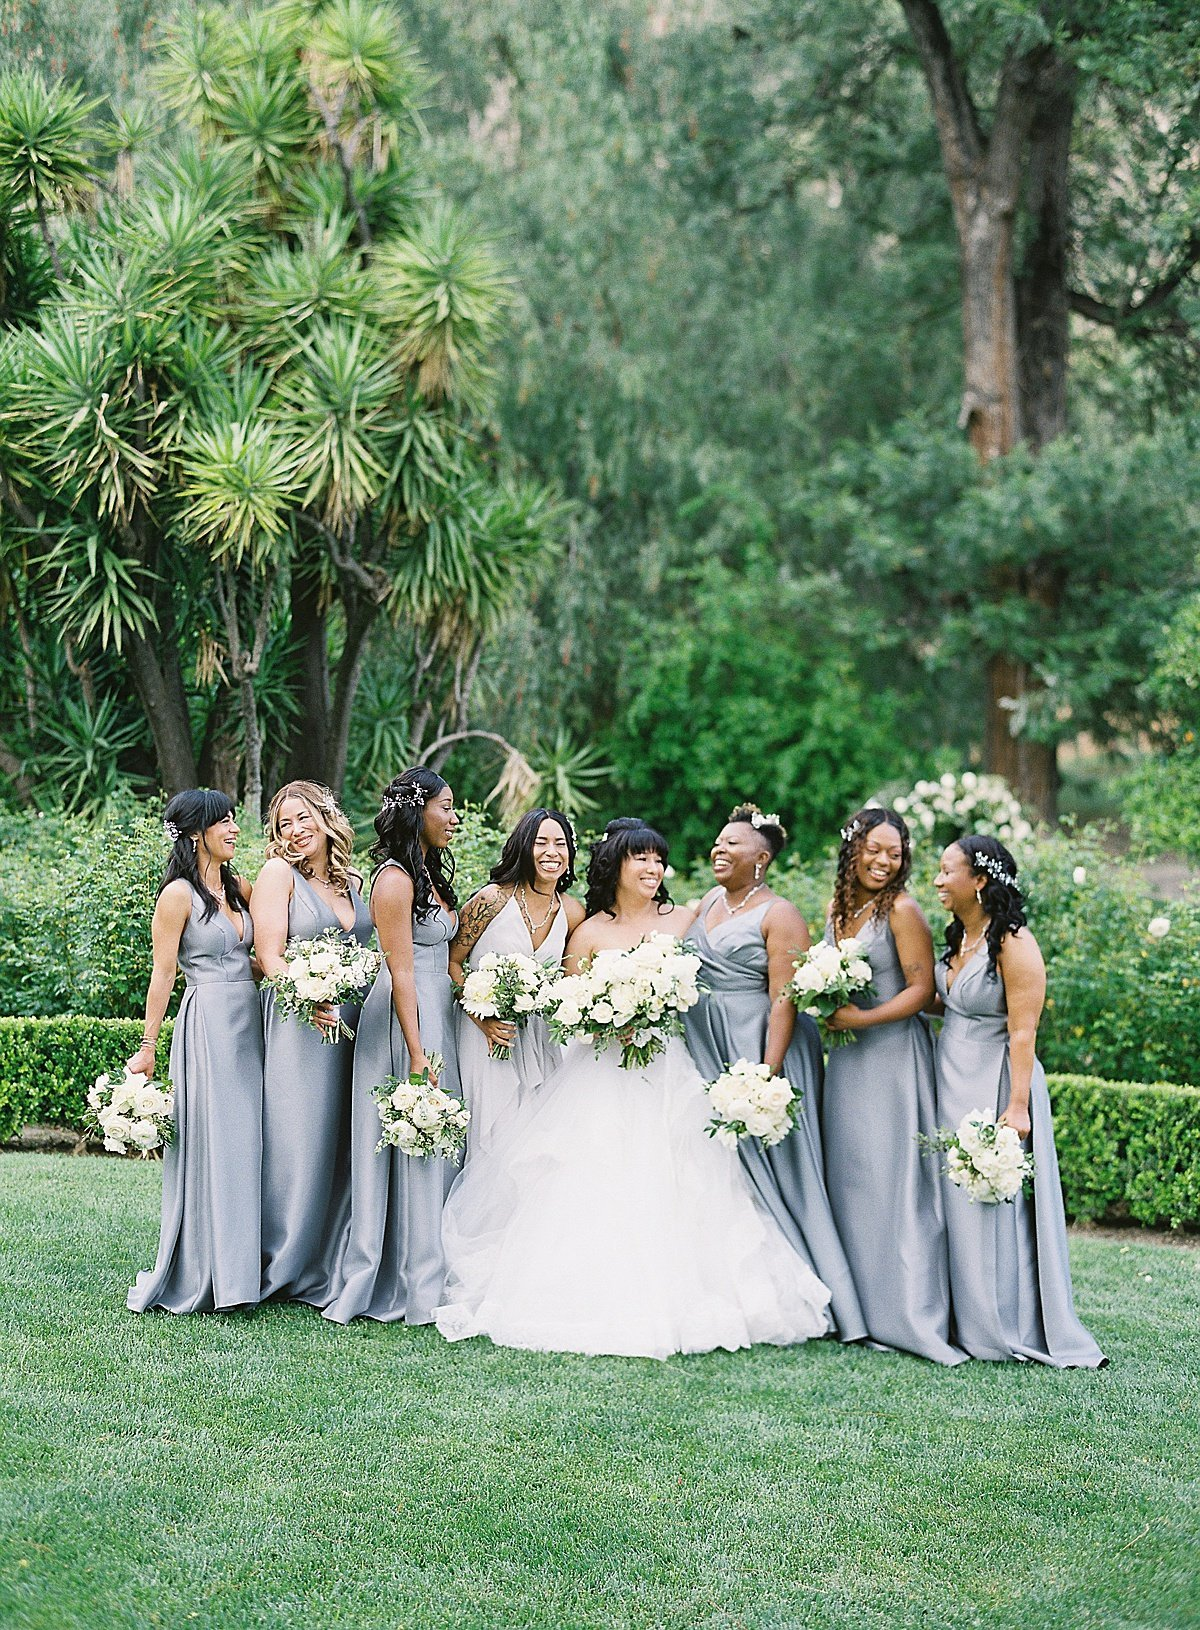 Posh Peony Newhall Mansion Piru Lush White Floral and Greenery Wedding_0017